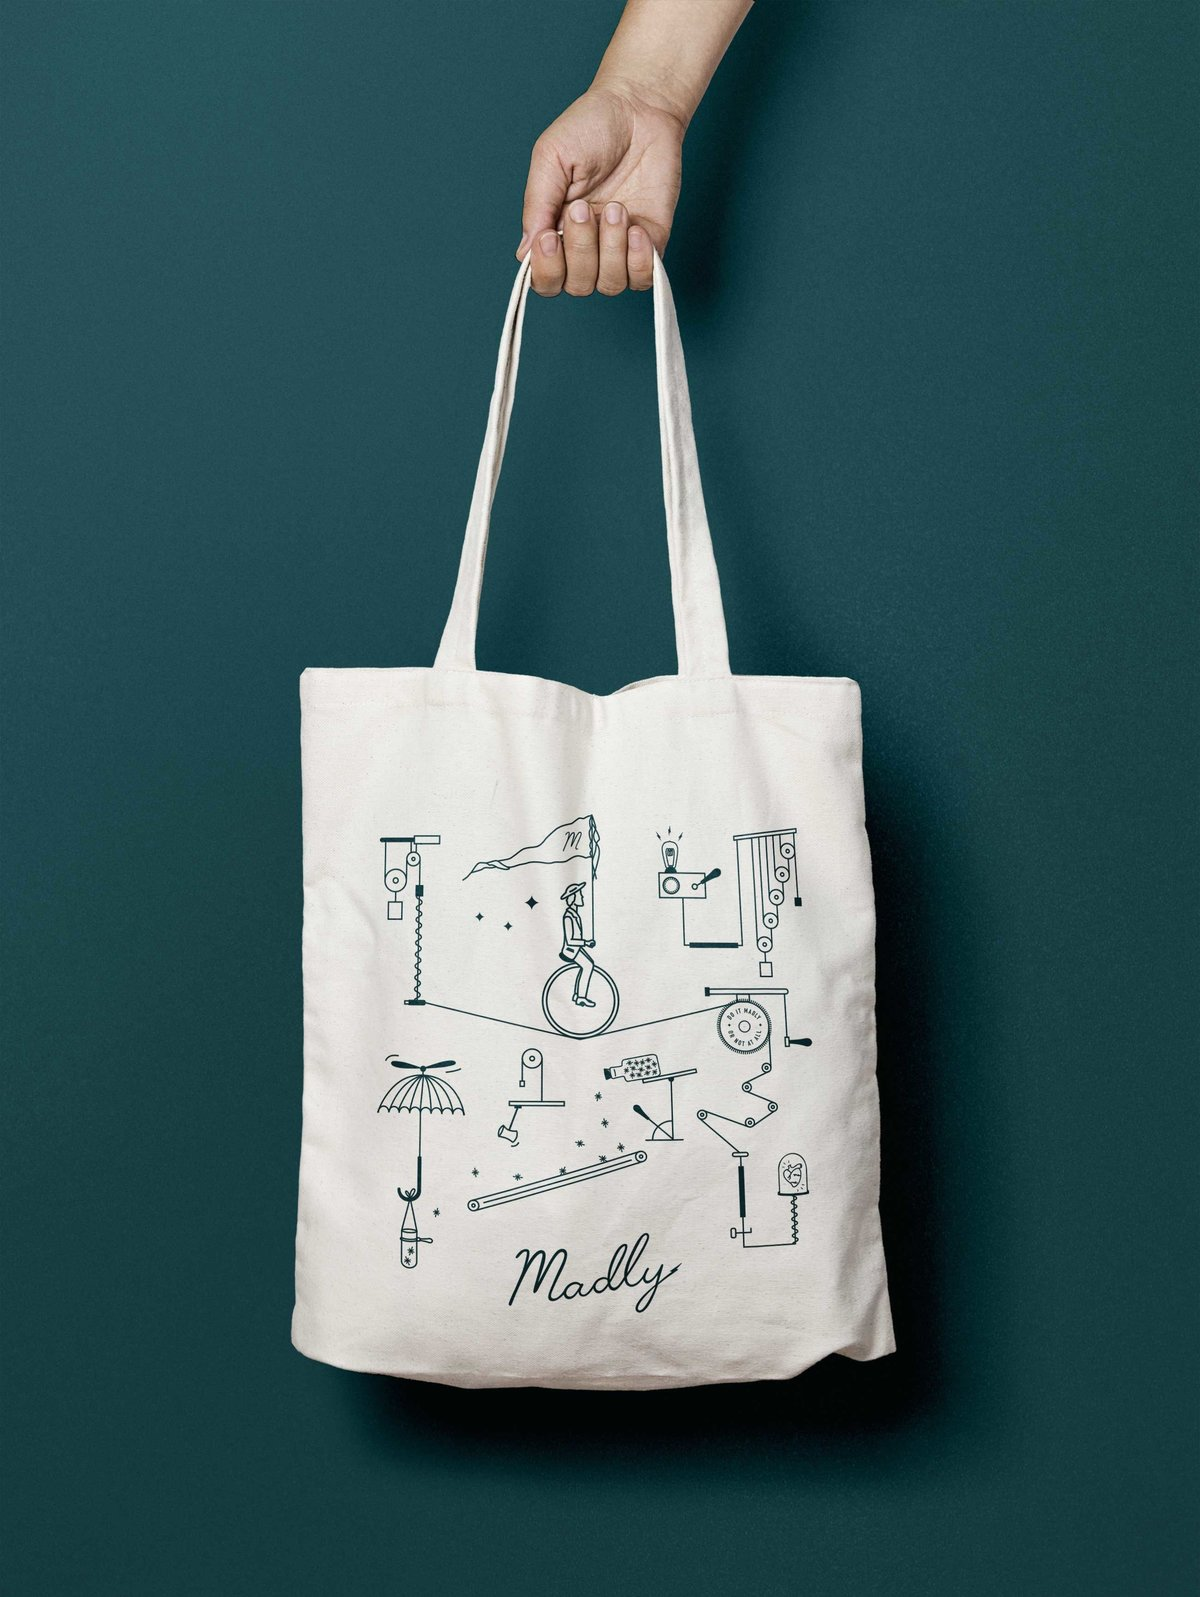 Canvas-Tote-Bag-MockUp-teal-background